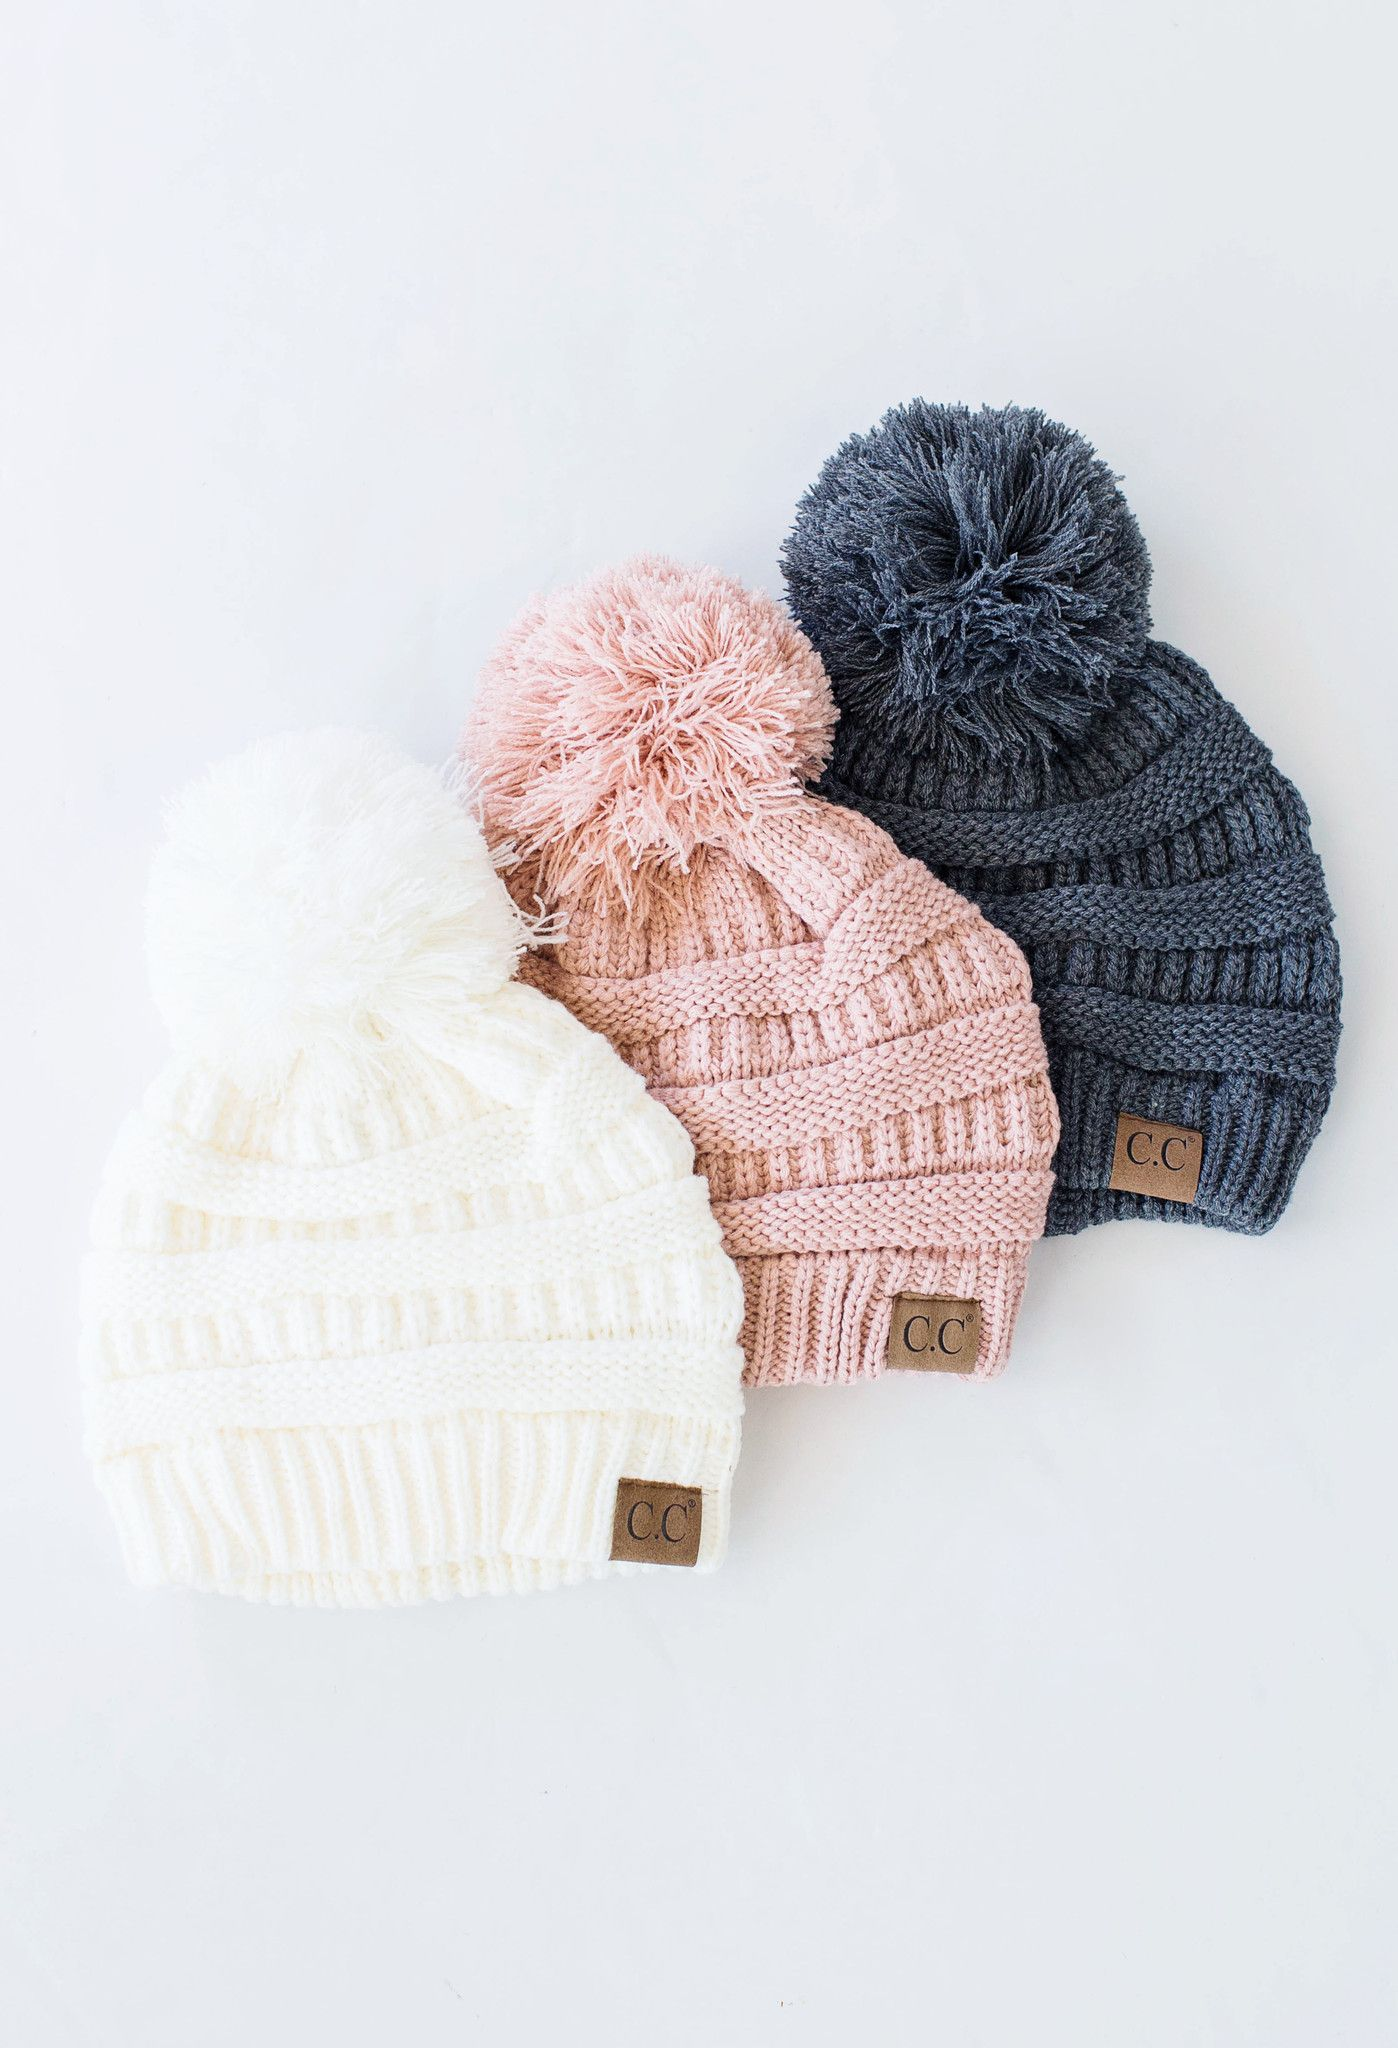 C.C. Beanies are a best seller and these Pom beanies are sure to be ...